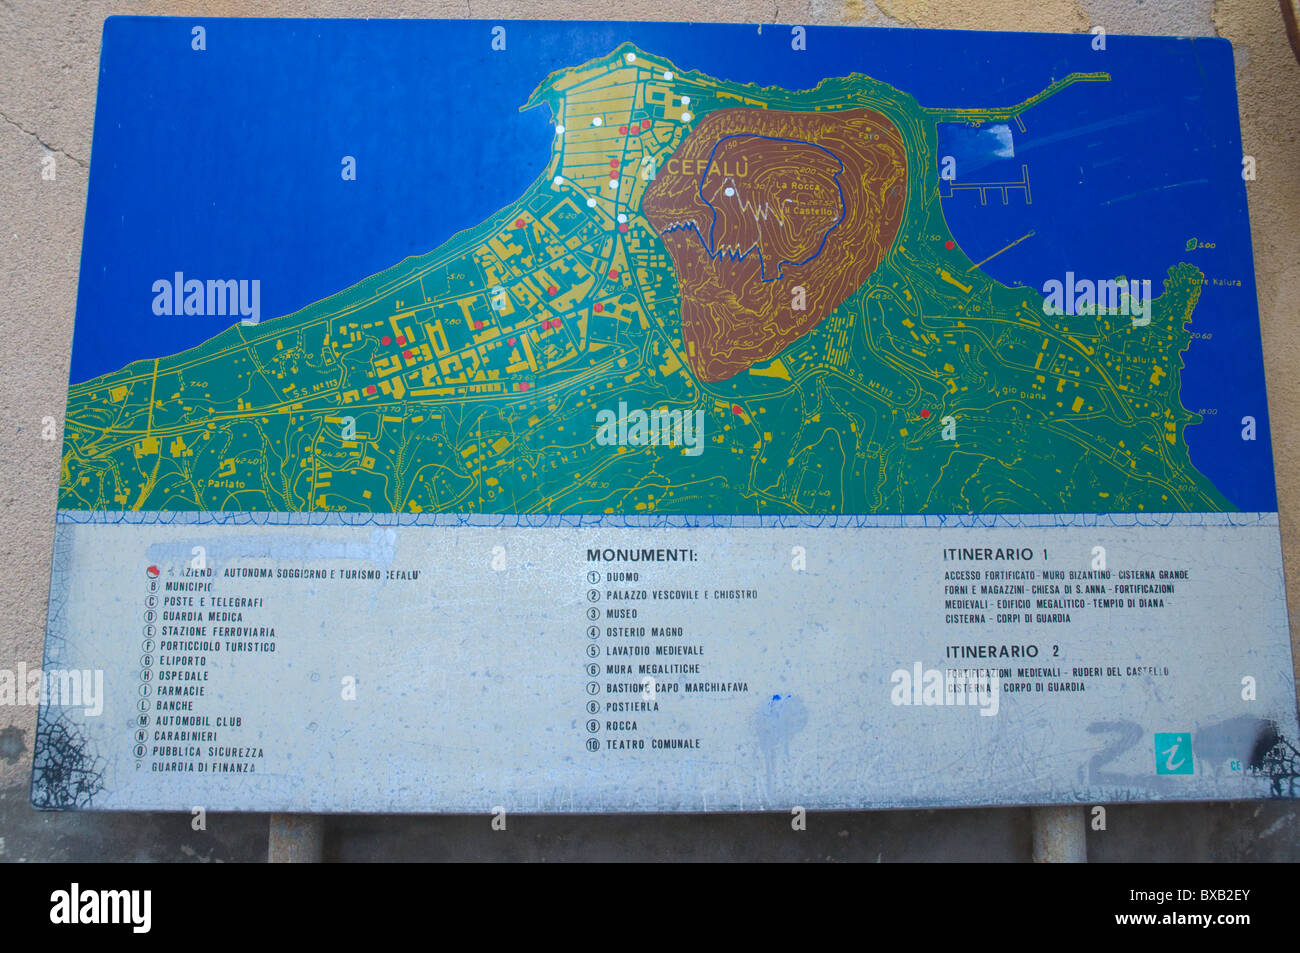 Map Of Cefalu Town Sicily Italy Europe Stock Photo 33434883 Alamy